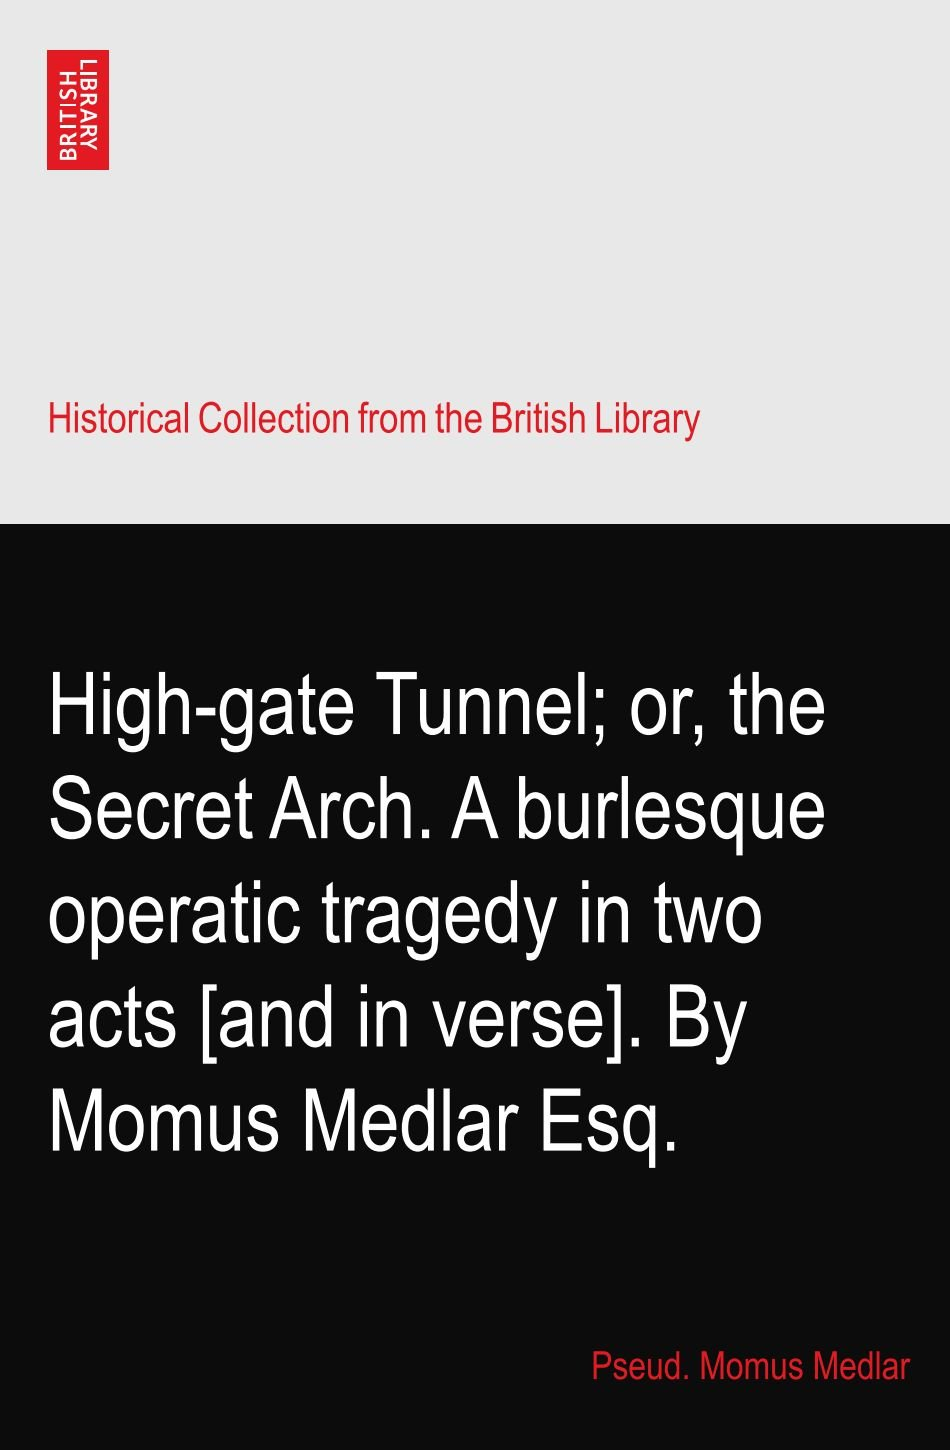 High-gate Tunnel; or, the Secret Arch. A burlesque operatic tragedy in two acts [and in verse]. By Momus Medlar Esq. Text fb2 ebook